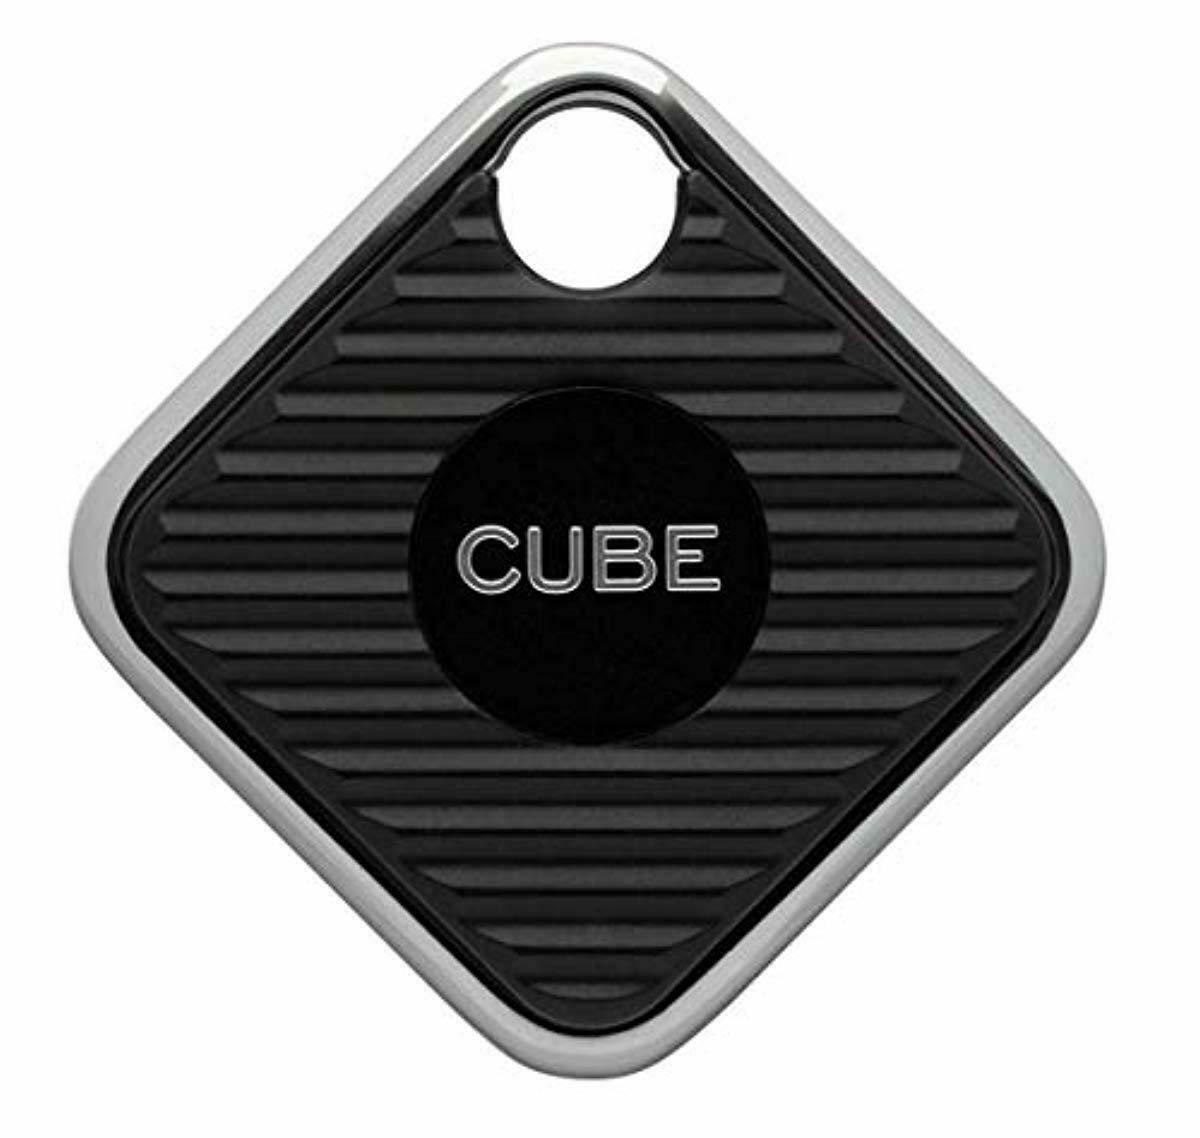 Cube Pro Key Finder Smart Bluetooth Tracker for Dogs, Kids,